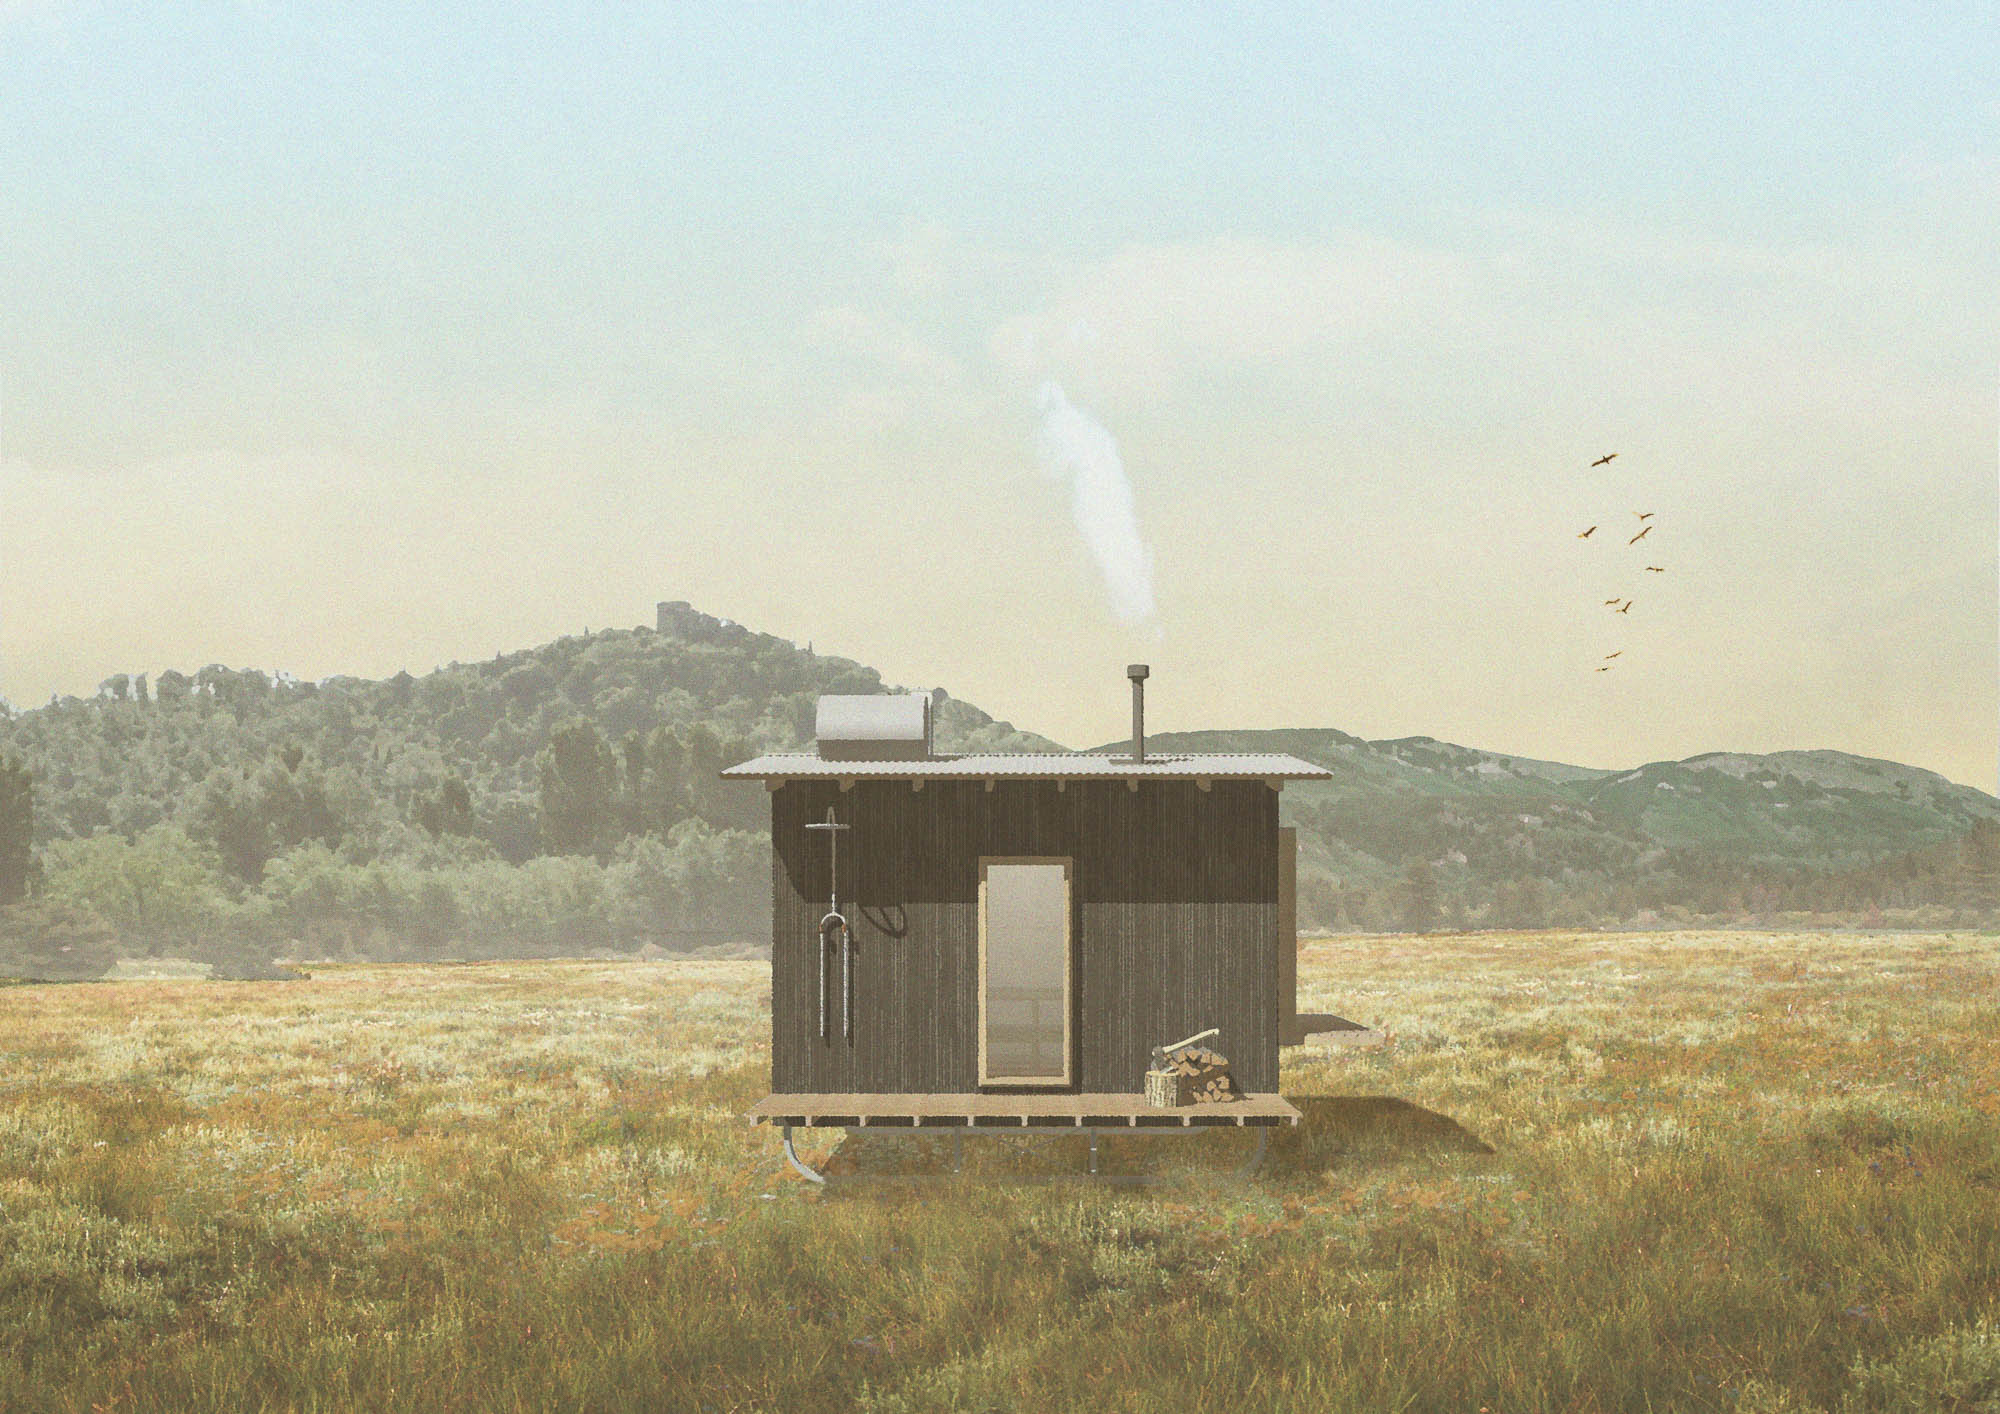 off-grid wood fired nomad cabin sauna in a field with outdoor shower and stack of logs